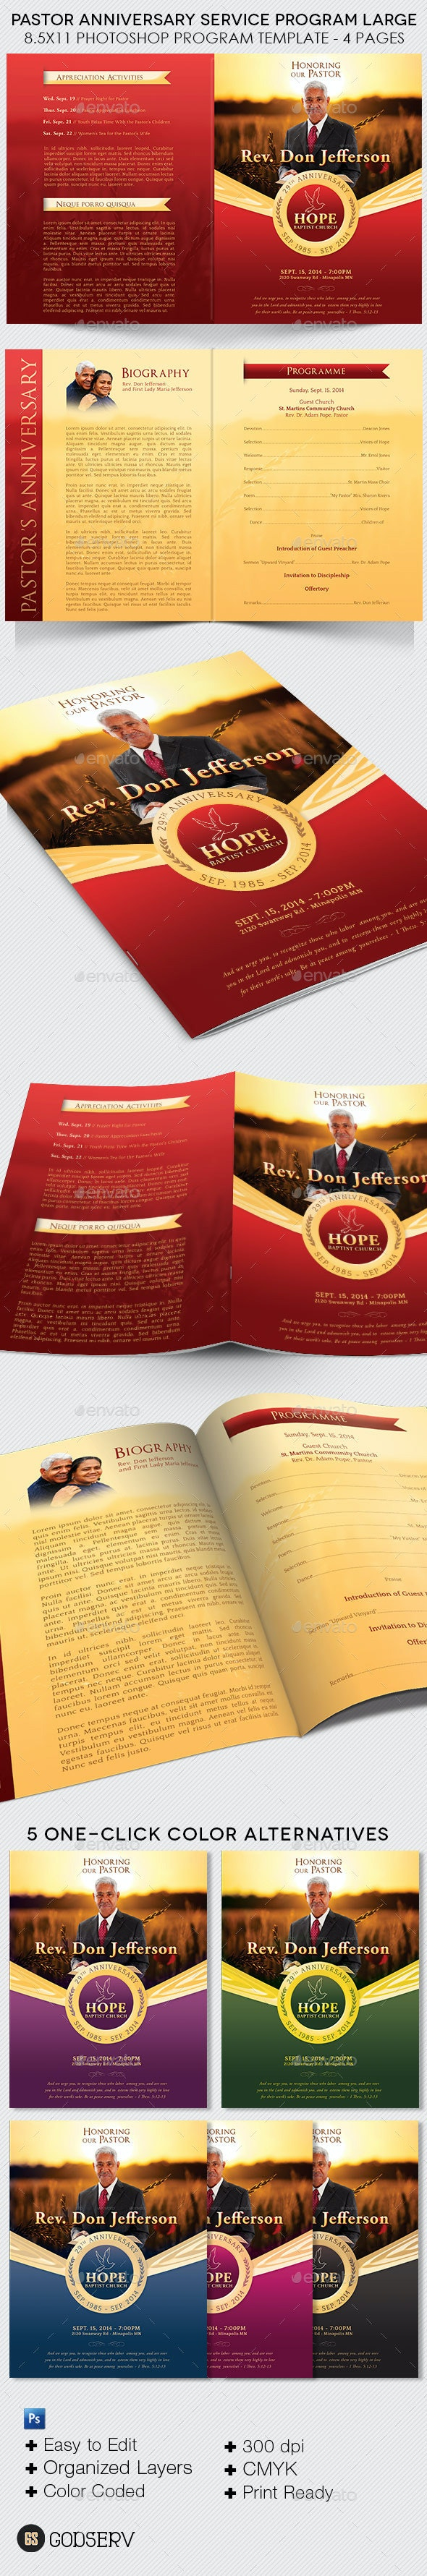 Pastor Anniversary Service Program Large Template - Informational Brochures